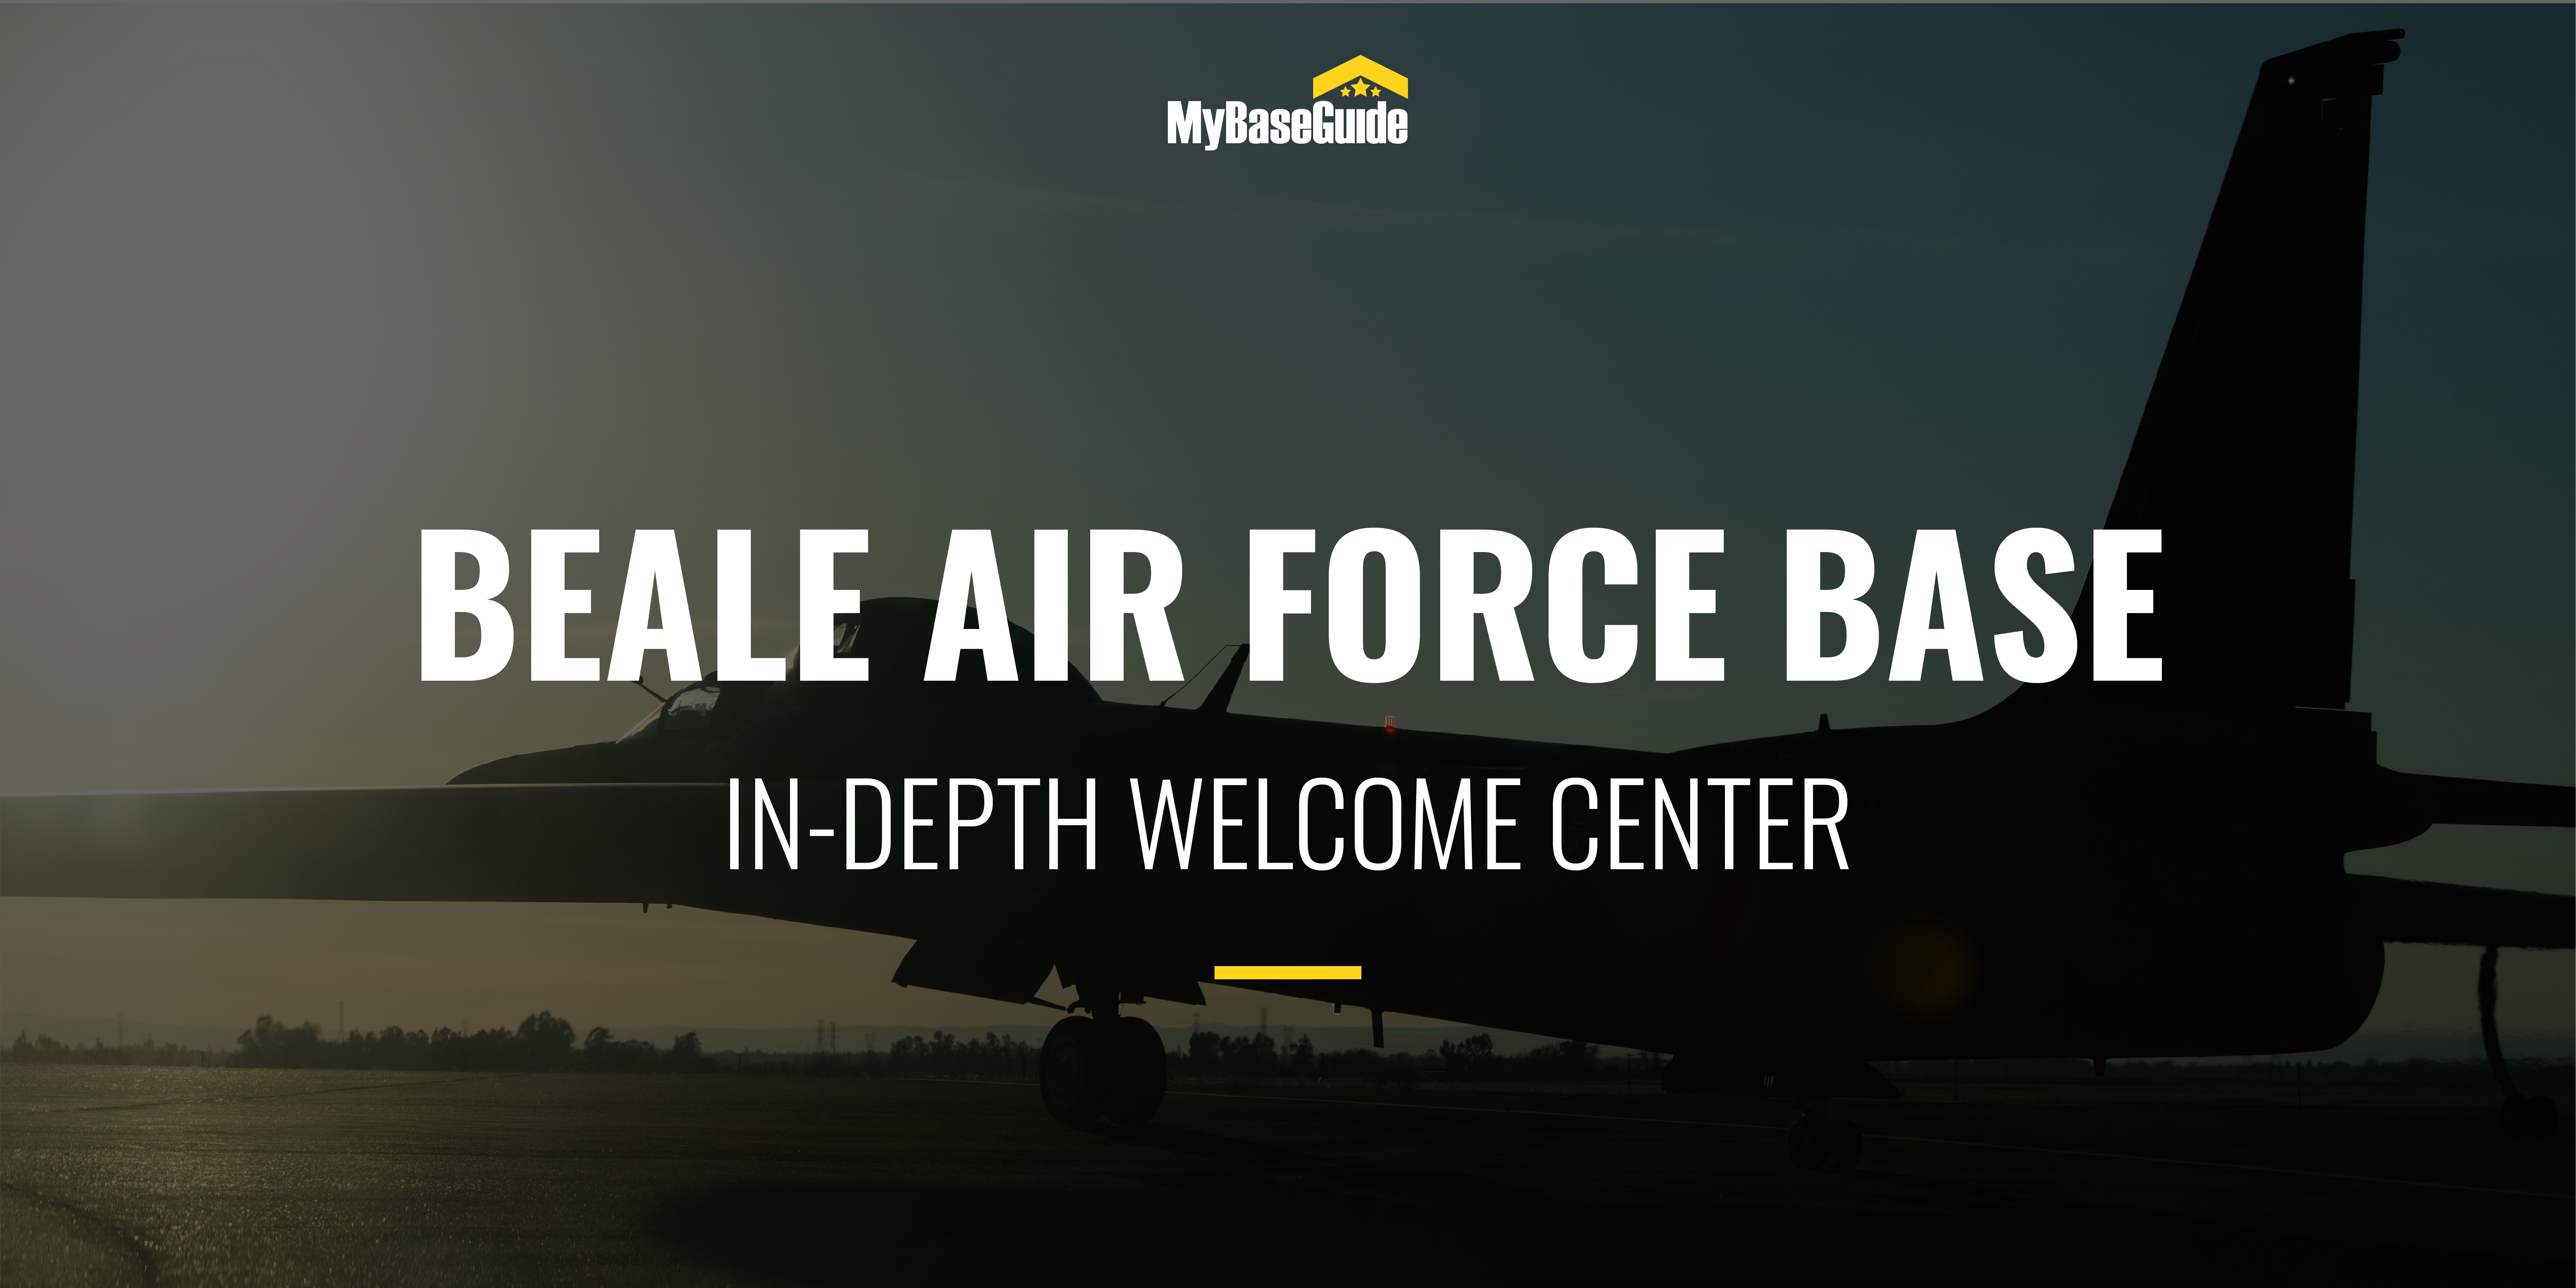 Beale Air Force Base: In-Depth Welcome Center